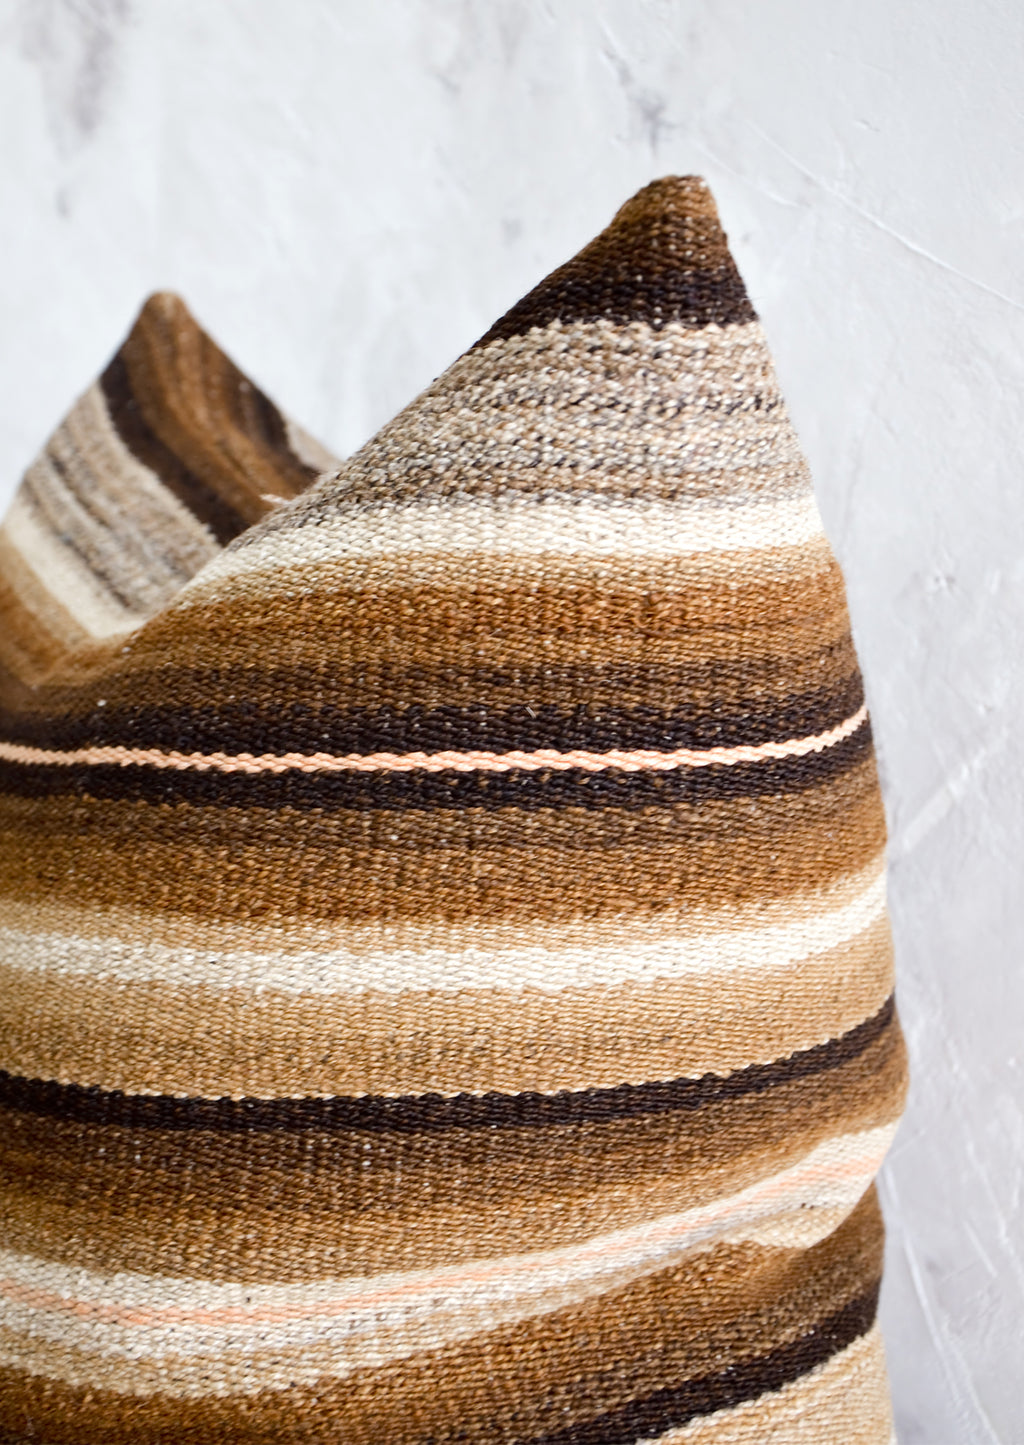 2: Throw pillow cover made from vintage brown and cream striped wool